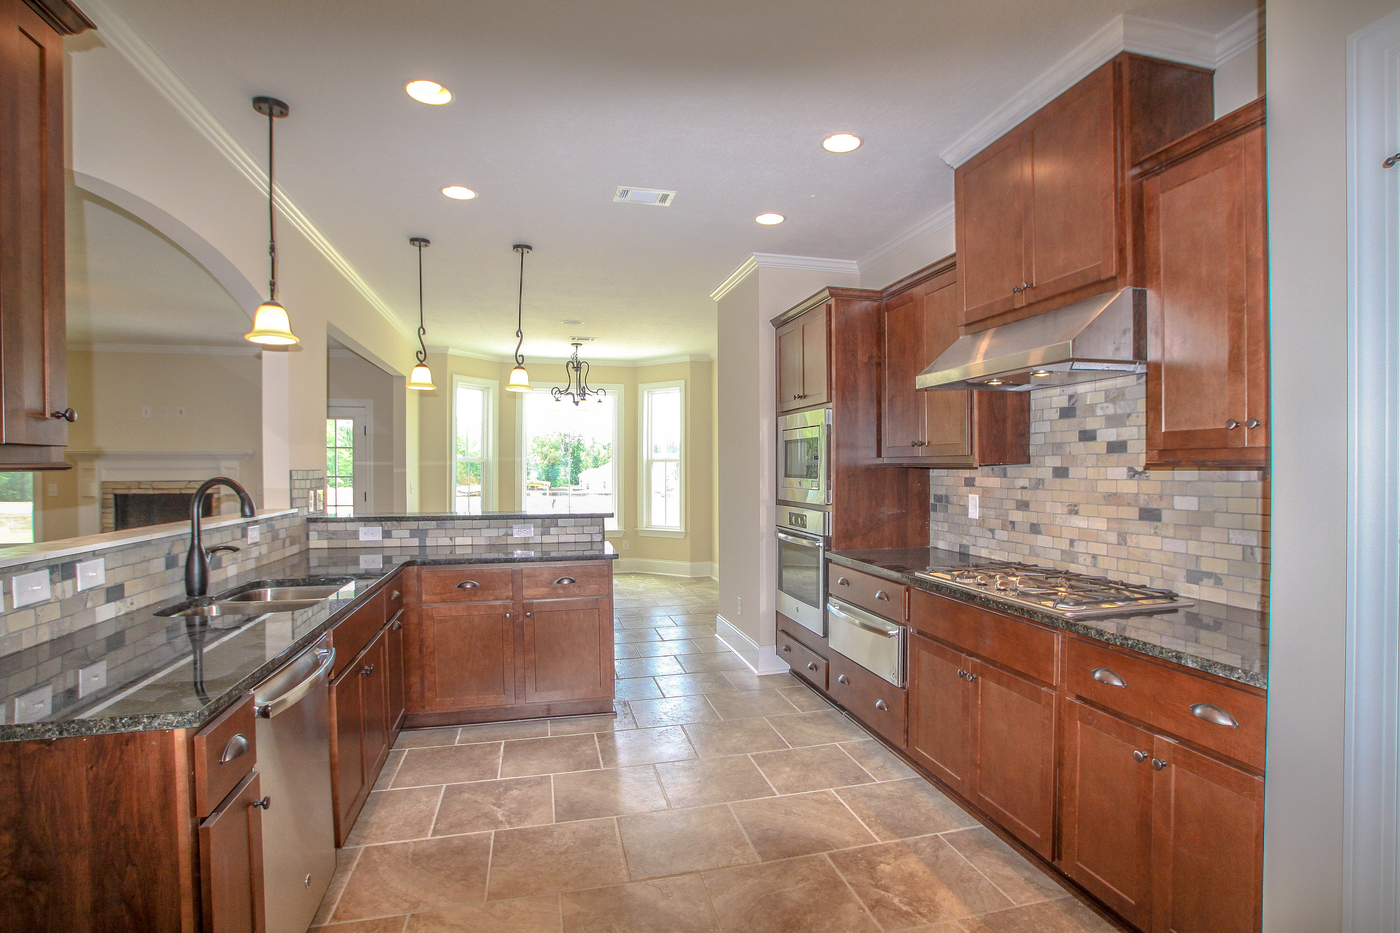 An image of a Kelarie home kitchen with tile and wood.